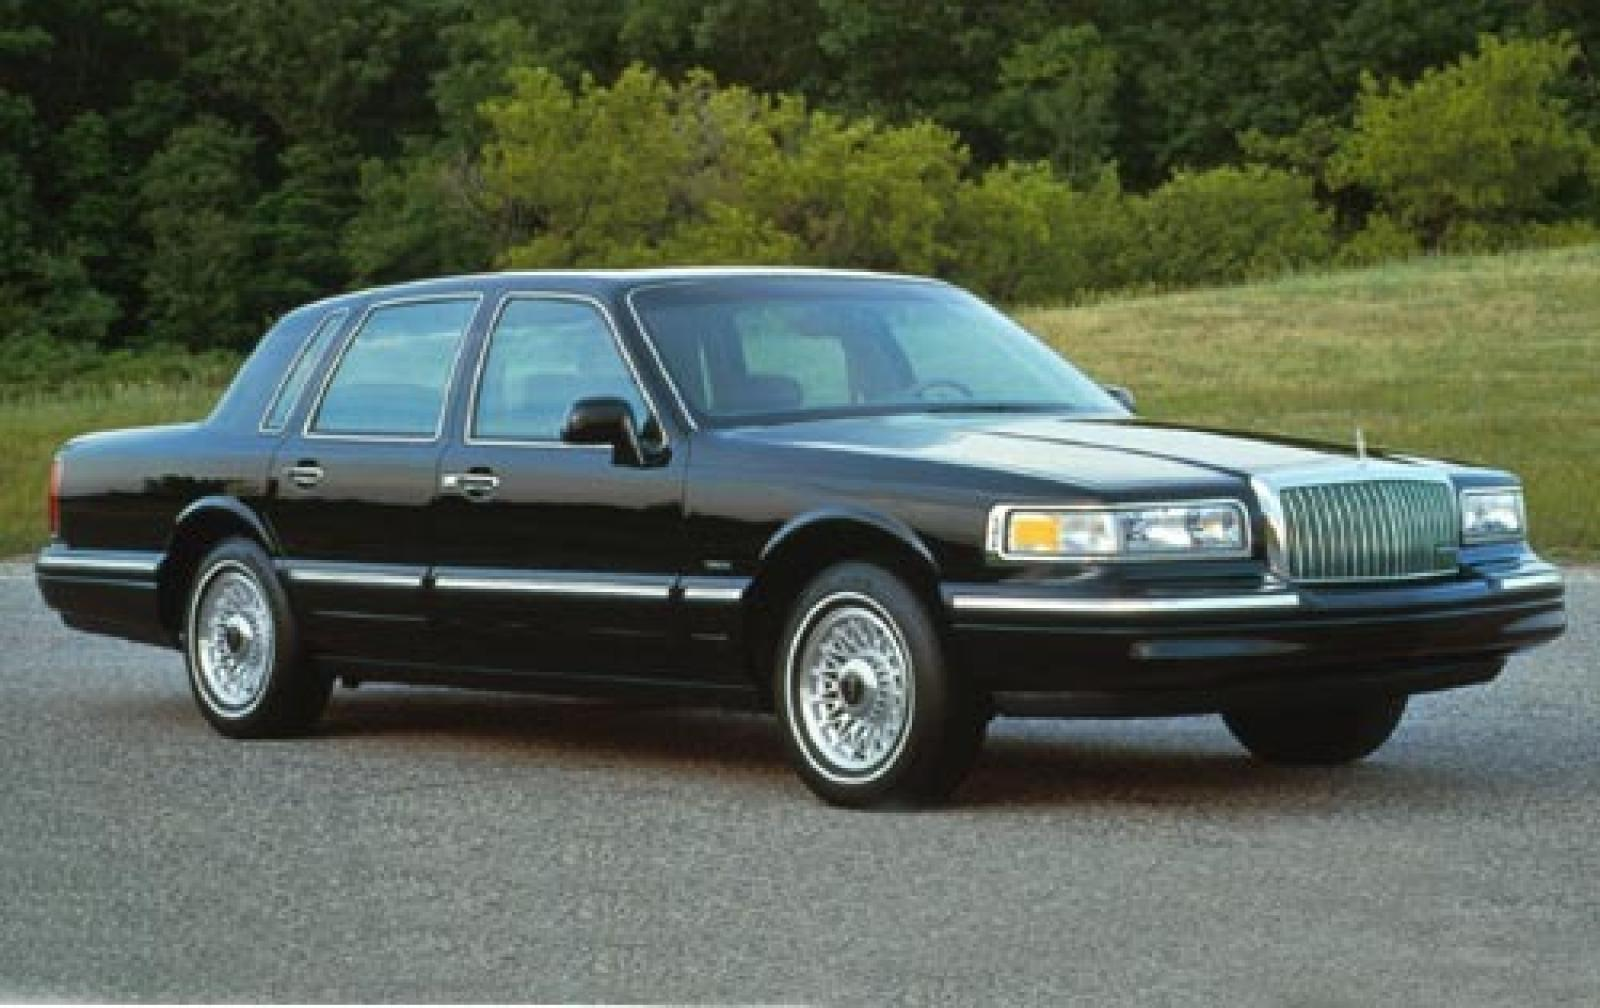 1995 lincoln town car information and photos zombiedrive. Black Bedroom Furniture Sets. Home Design Ideas